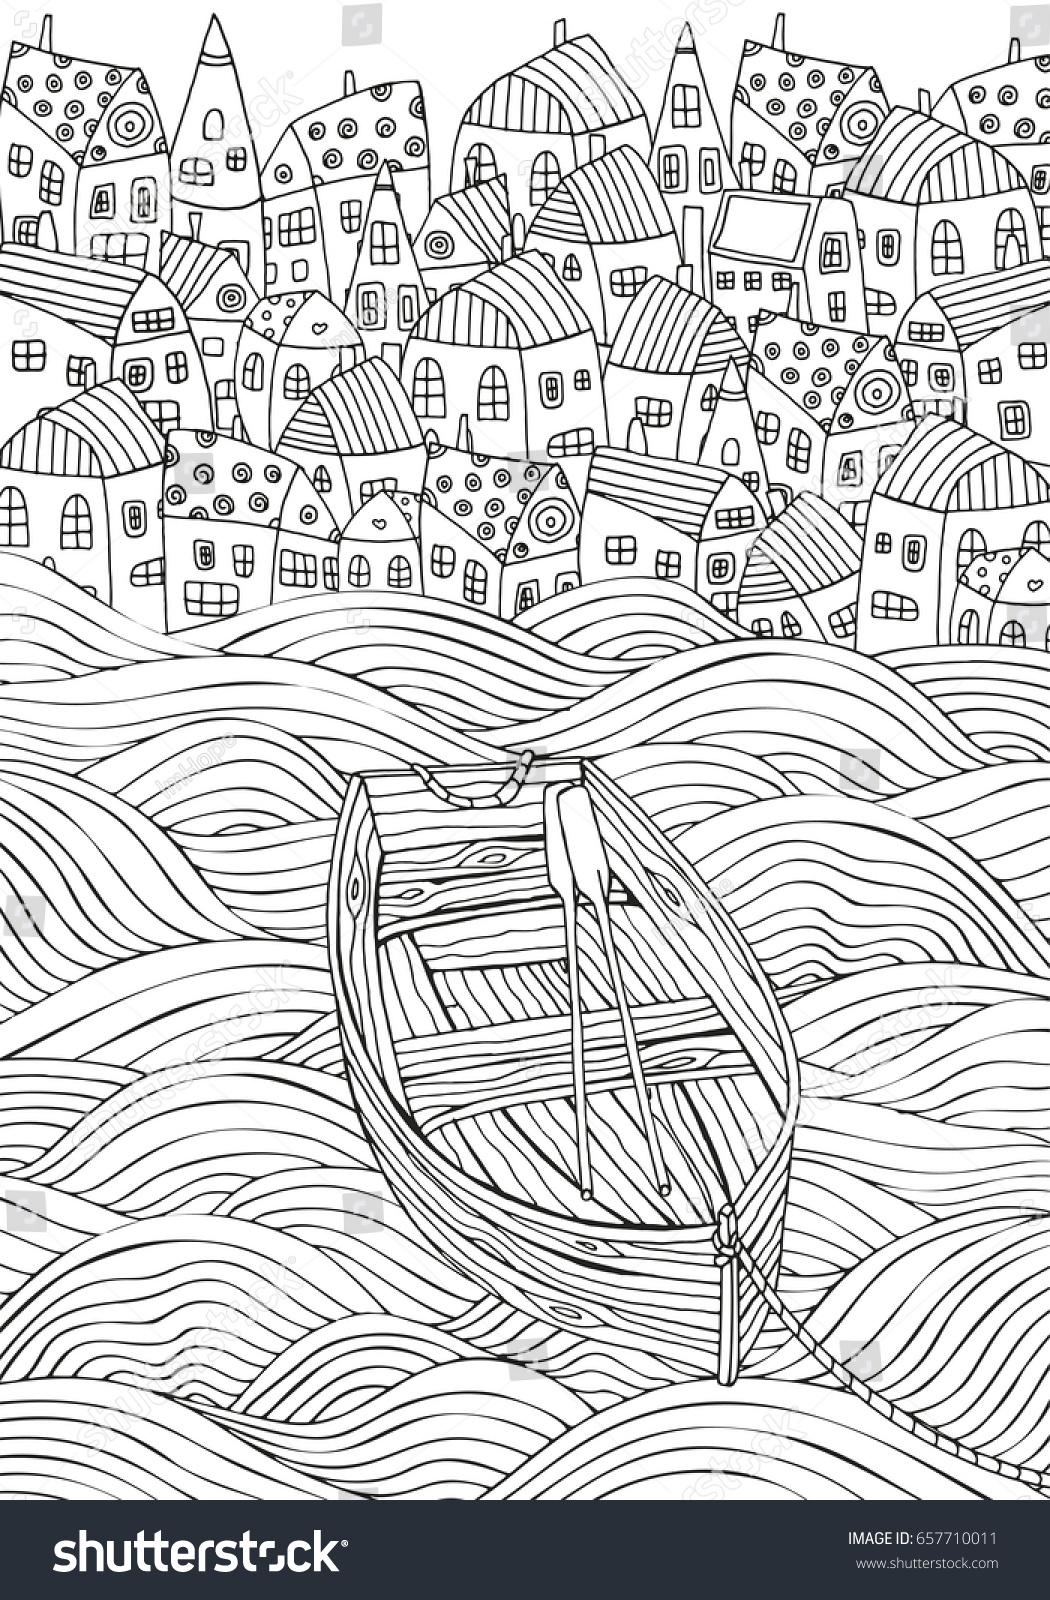 Wooden Boat Floating On The Waves Seaside Homes Sea Art